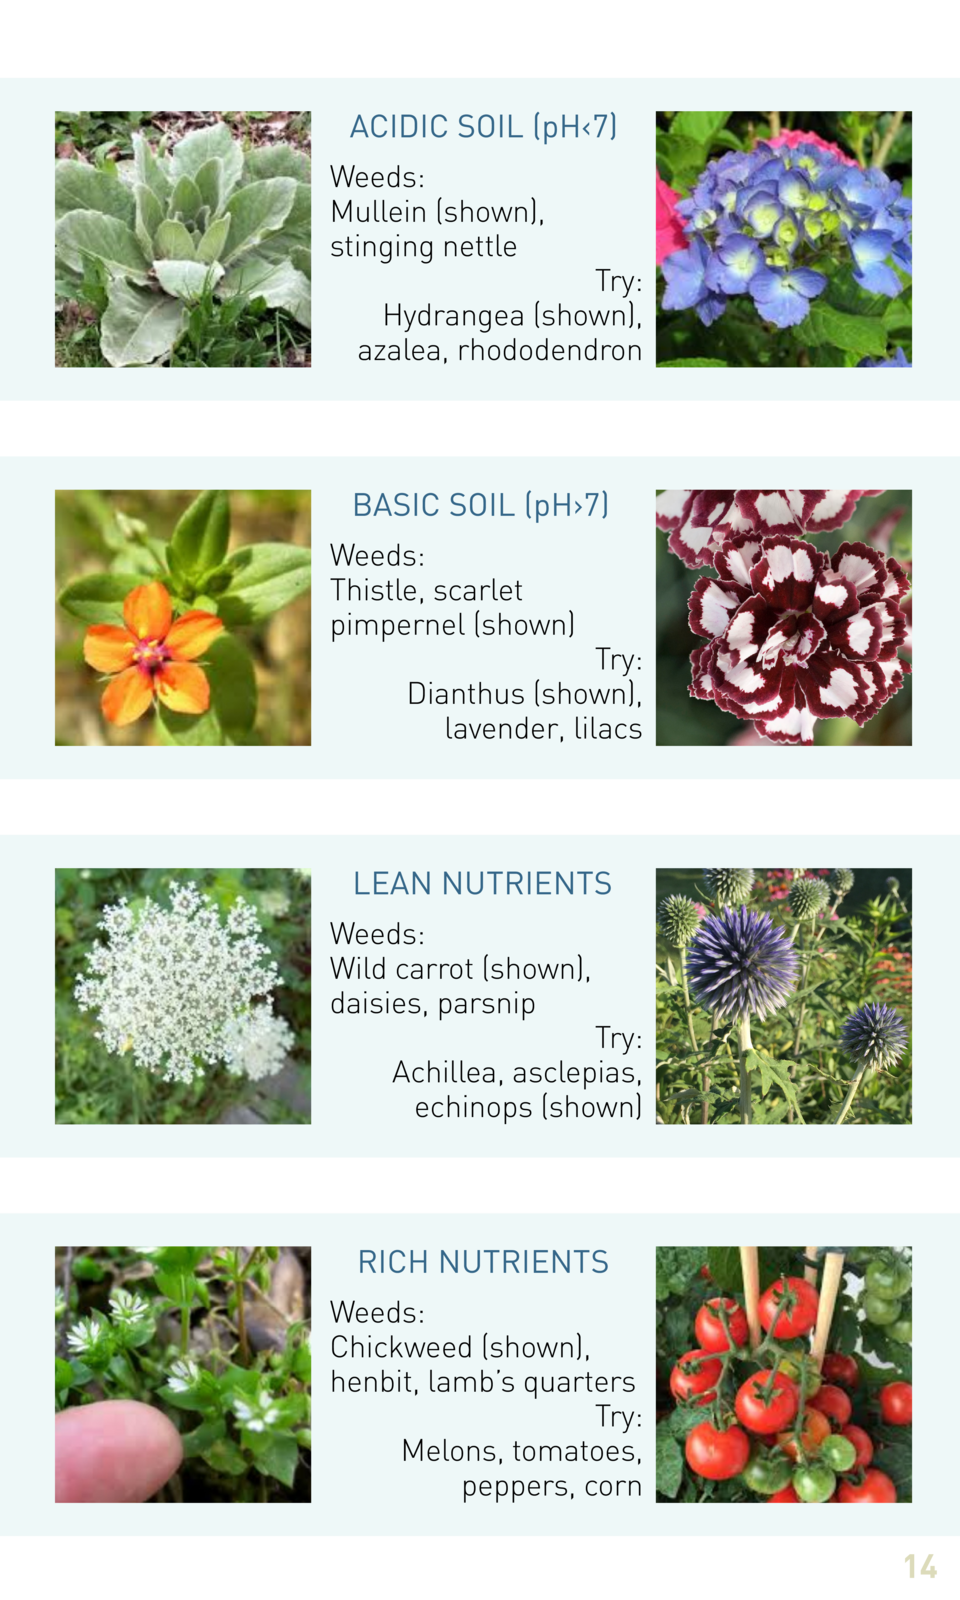 ACIDIC SOIL  pH   7  Weeds  Mullein  shown , stinging nettle  Try  Hydrangea  shown , azalea, rhododendron  BASIC SOIL  pH...